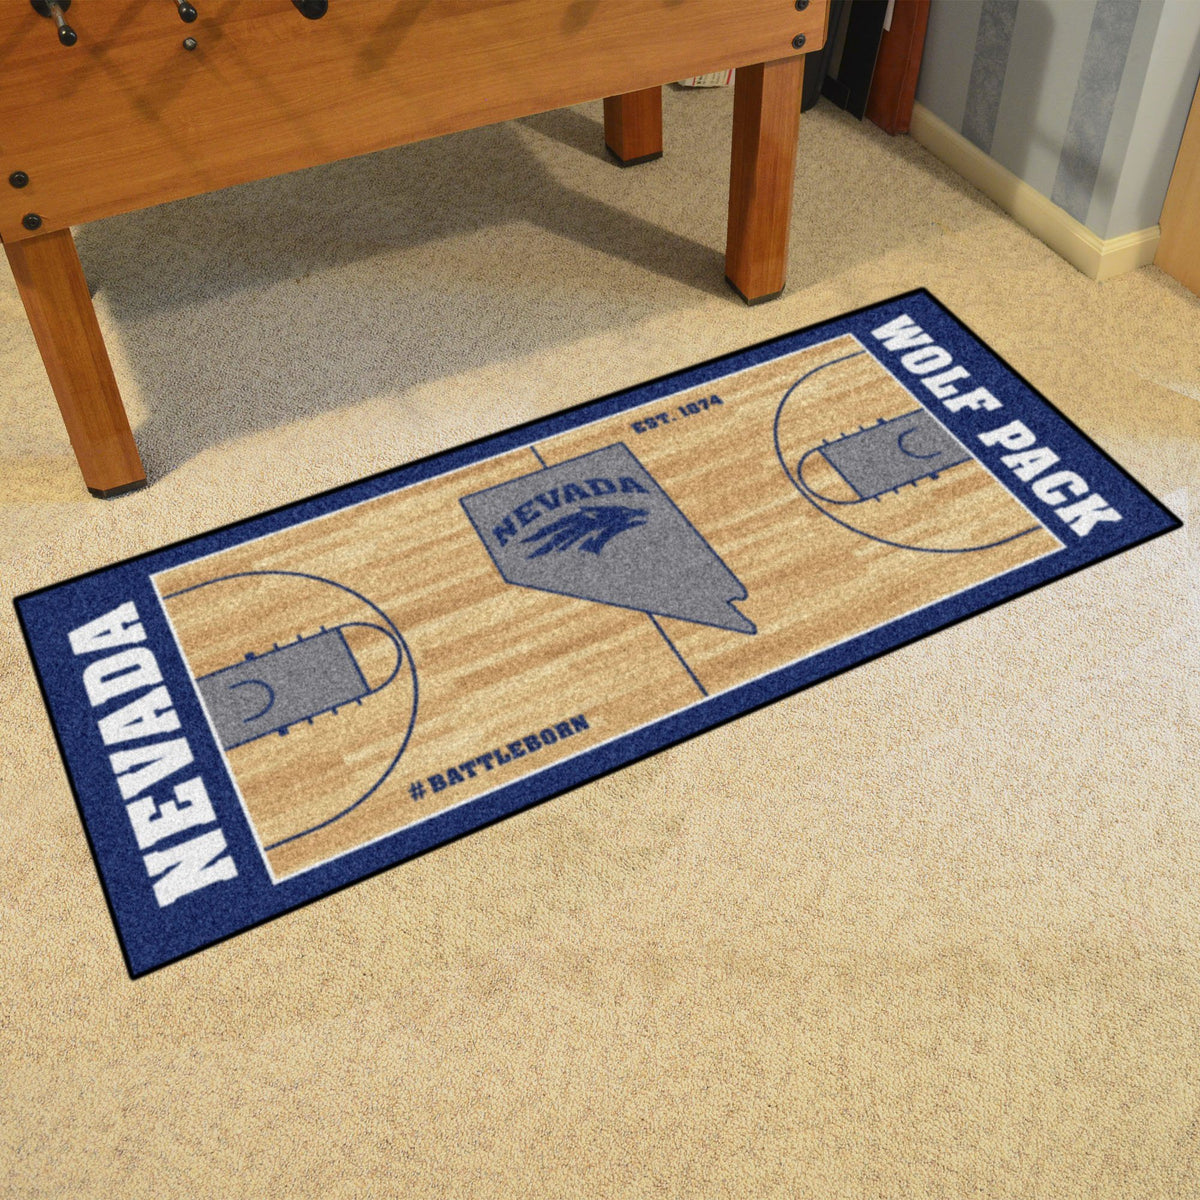 Collegiate - NCAA Basketball Runner Collegiate Mats, Rectangular Mats, NCAA Basketball Runner, Collegiate, Home Fan Mats Nevada